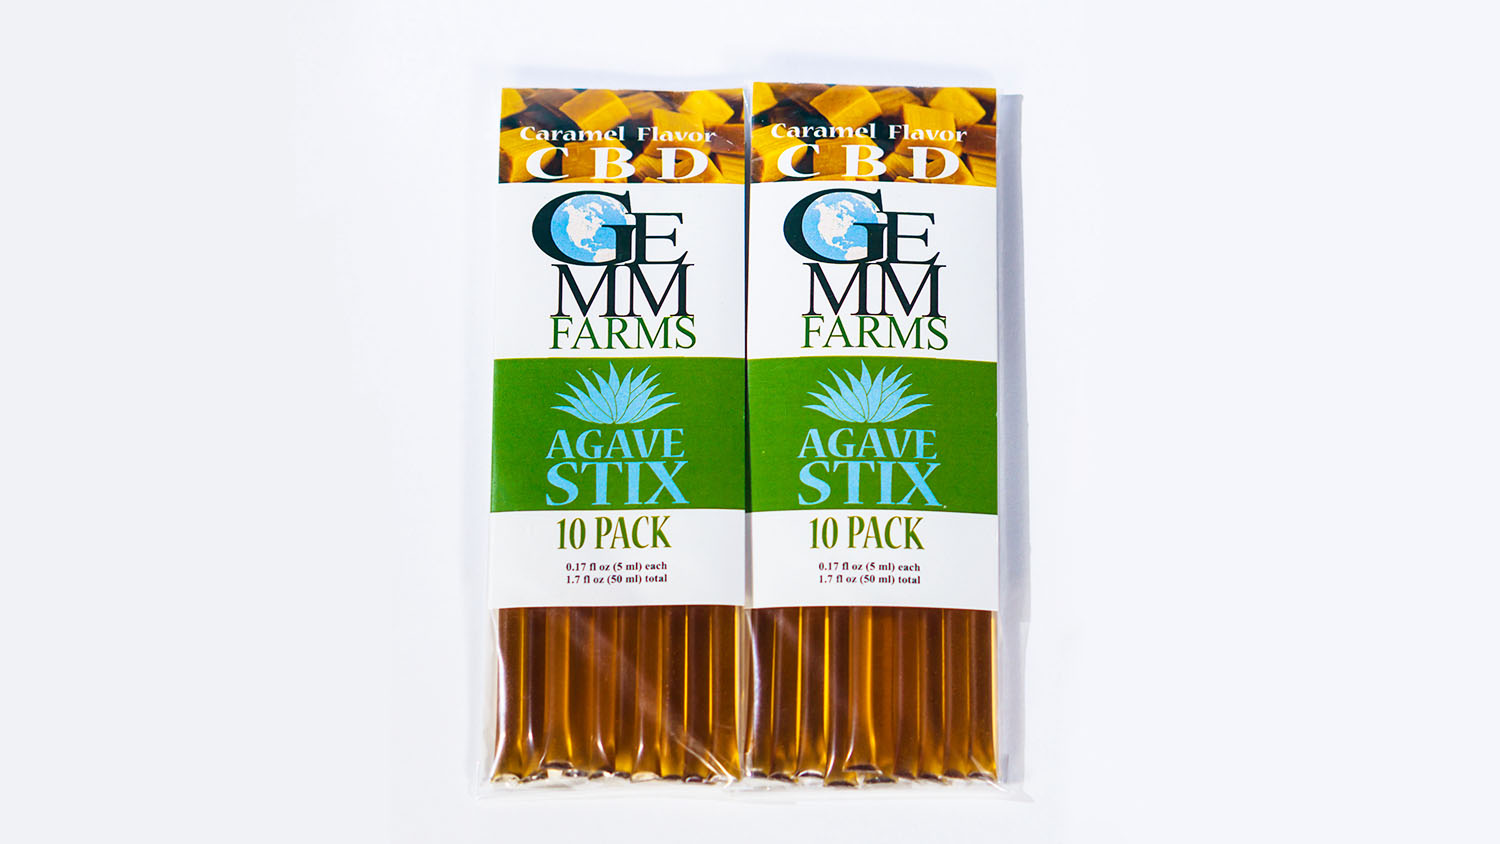 Gemm Farms Agave Stix